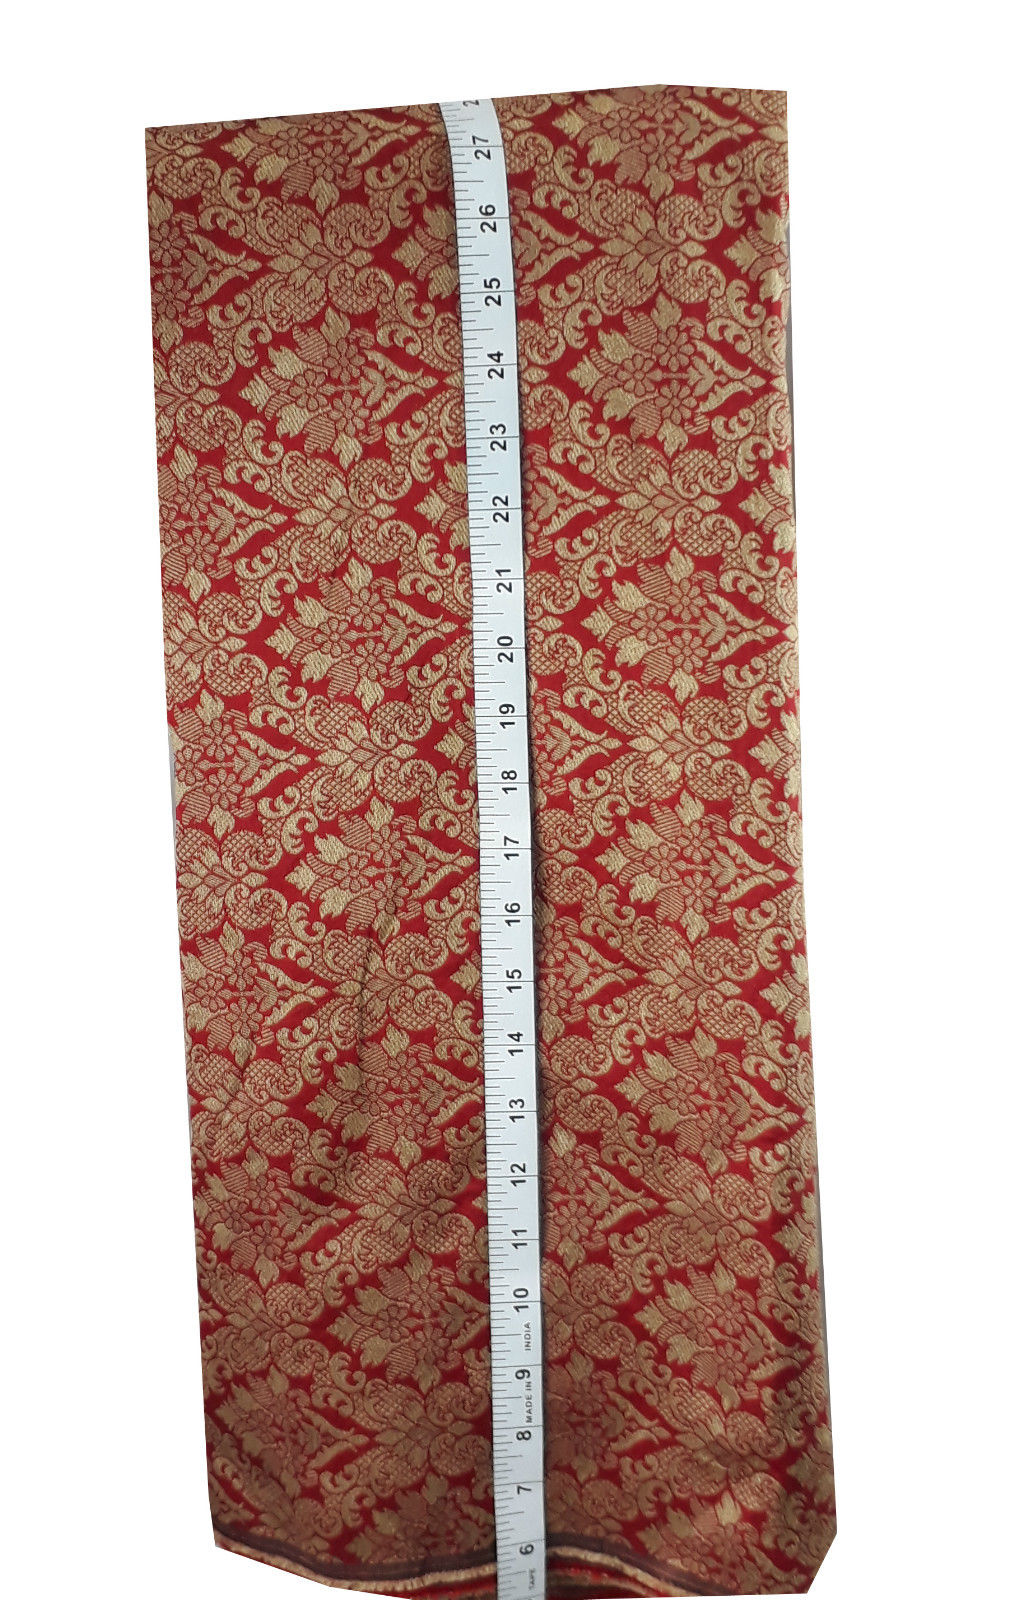 online wholesale fabric store india online wholesale fabric store india Embroidery Faux Silk Brick Red 43 inches Wide 8017